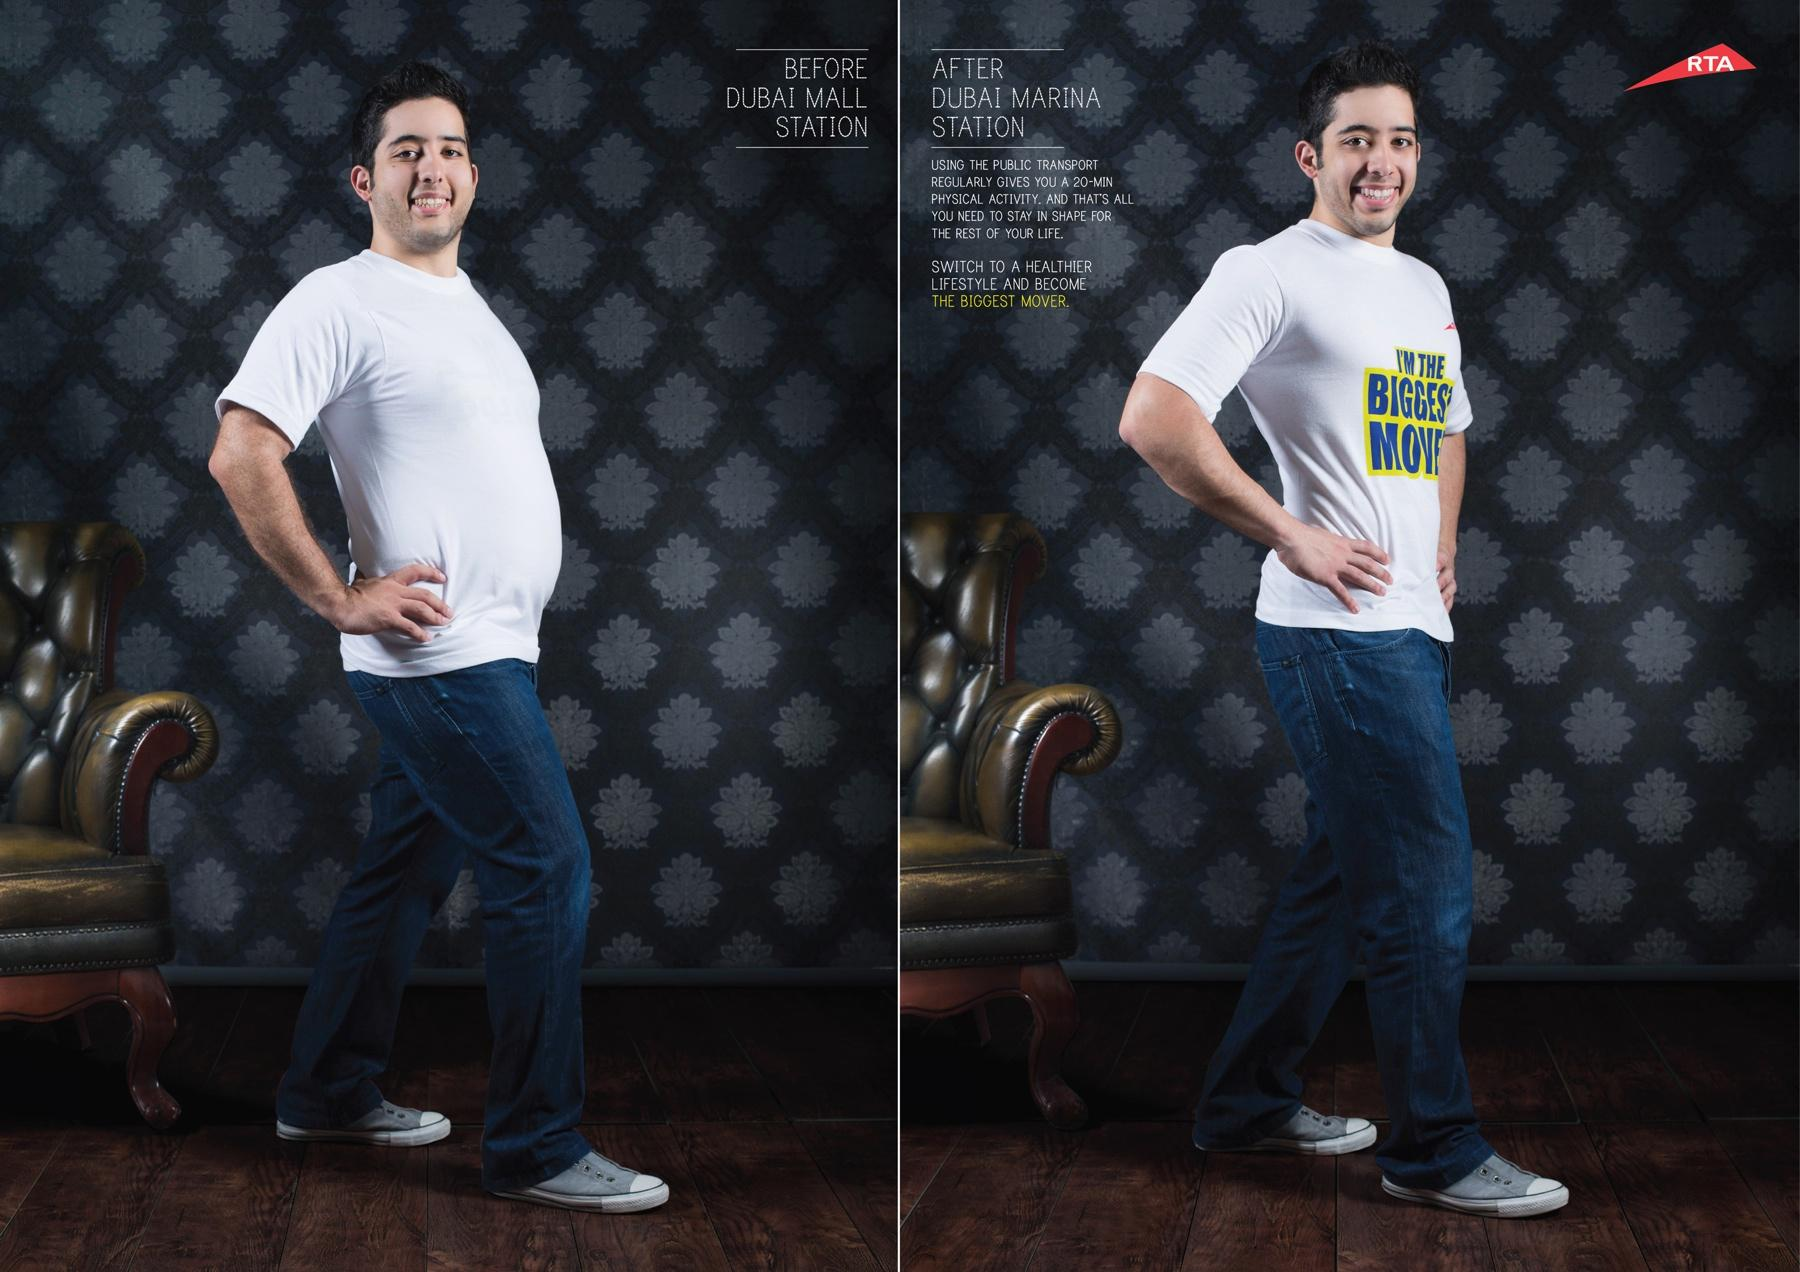 Road and Transport Authority Dubai Print Ad -  I'm the biggest mover, 3